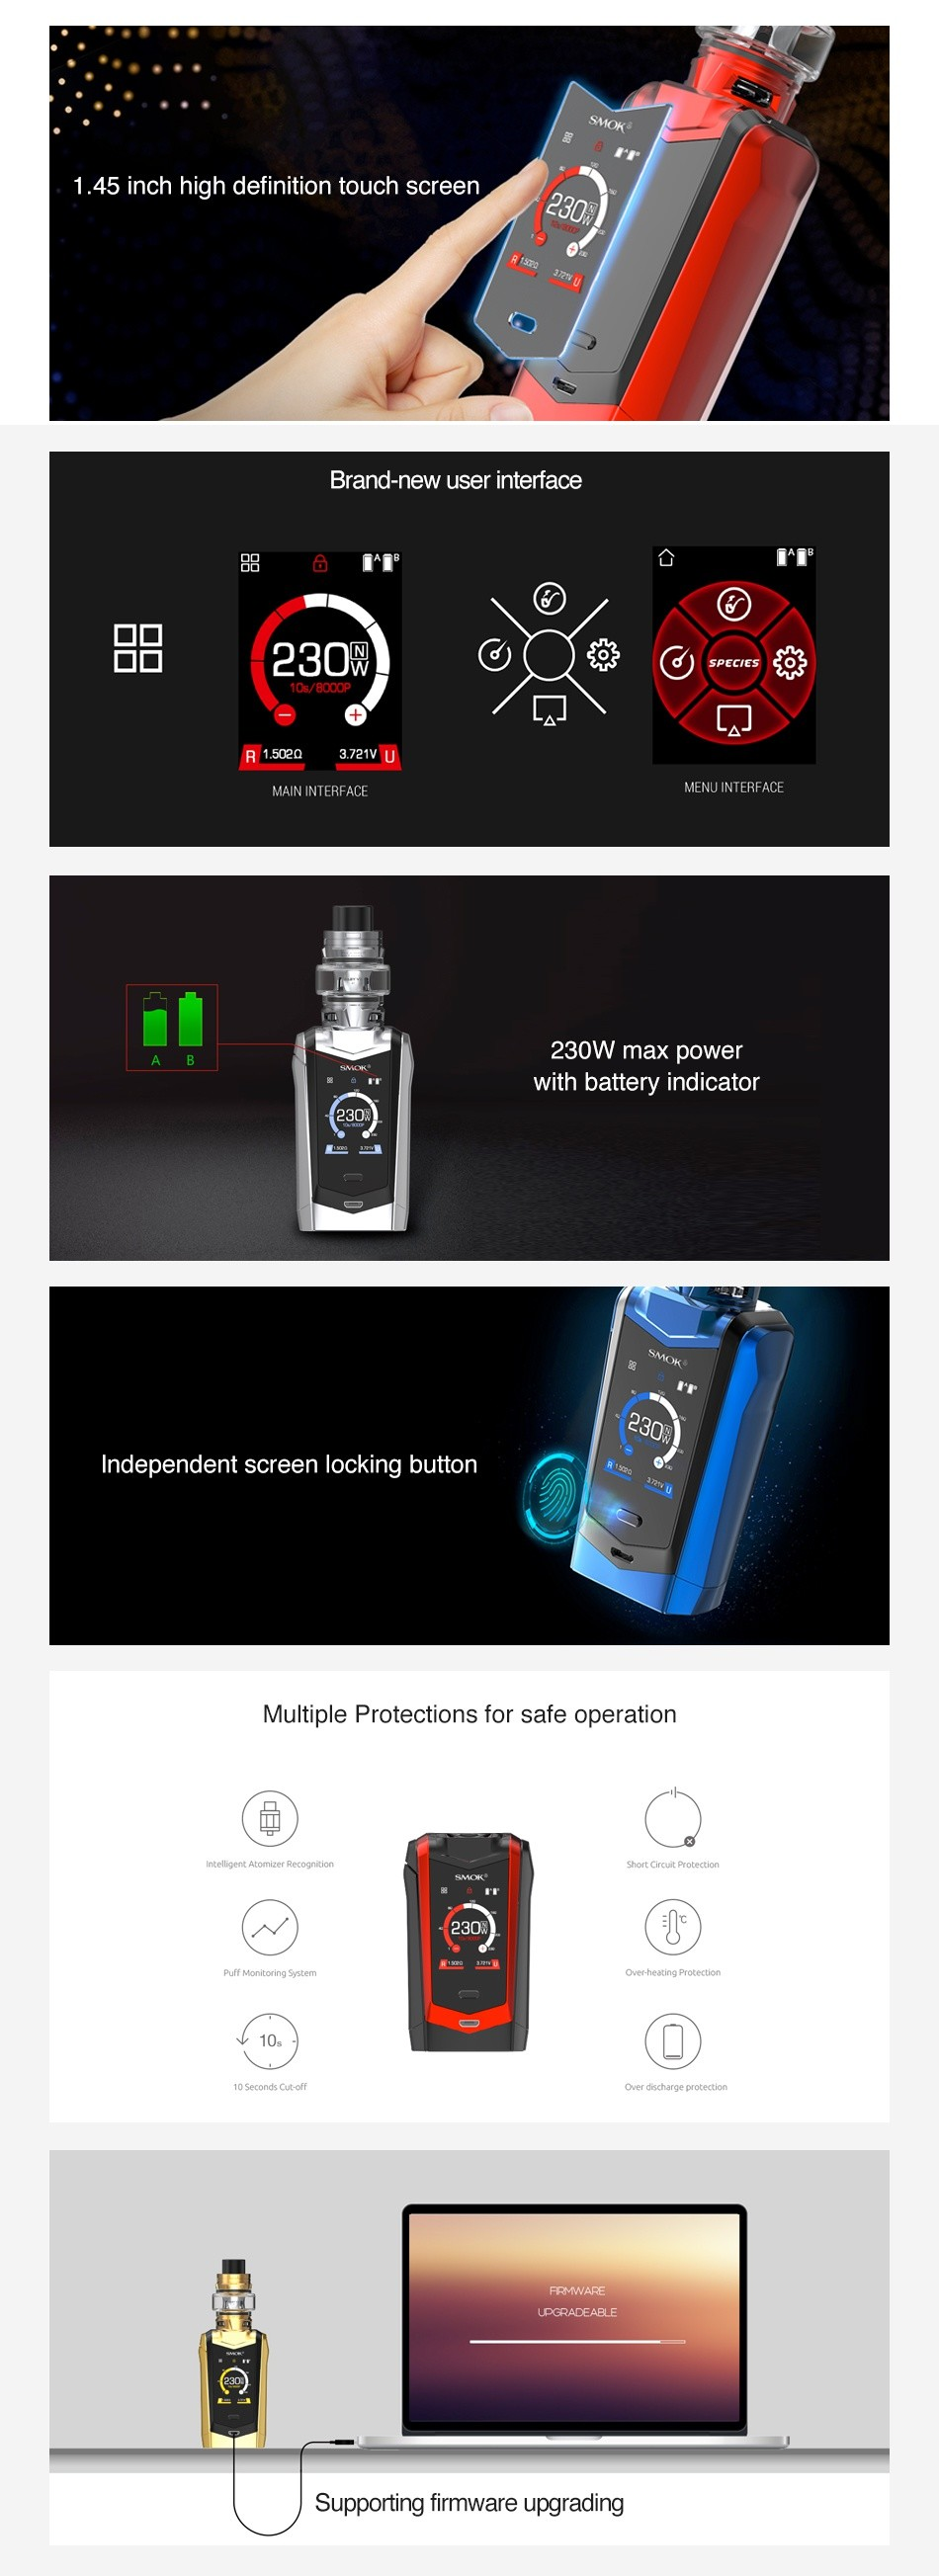 SMOK Species 230W Touch Screen TC Box MOD sMOK 230 30 230 230     Black red Red black Gold black Prism blue black SMOK 230 230 230 230     Prism chrome green black White red 7 Color and black and black